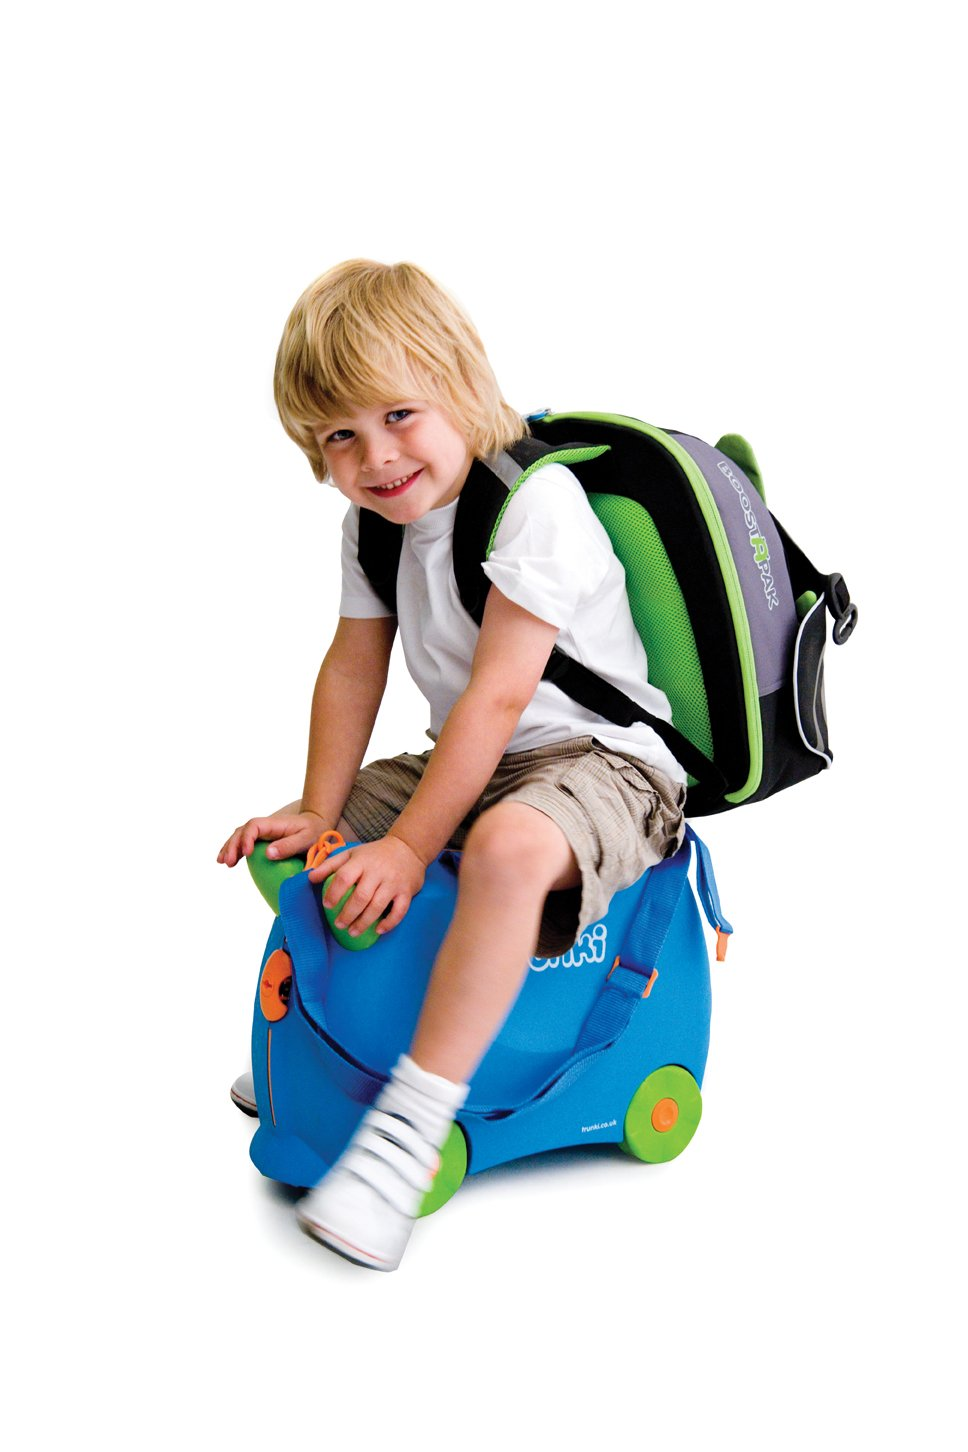 Trunki BoostApak - Travel Backpack & Child Car Booster Seat for Group 2-3 (Green)  QUICKLY TRANSFORMS – Kid's bag to portable booster cushion in seconds (featuring internal hard shell and fold out seatbelt guides) AVOID HIRE CHARGES - On fly drive holidays! Can also be used as dining, cinema or stadium booster to see the action HAND LUGGAGE - 8-litre capacity for packing toys/games/stationary keeping children entertained on the go 11